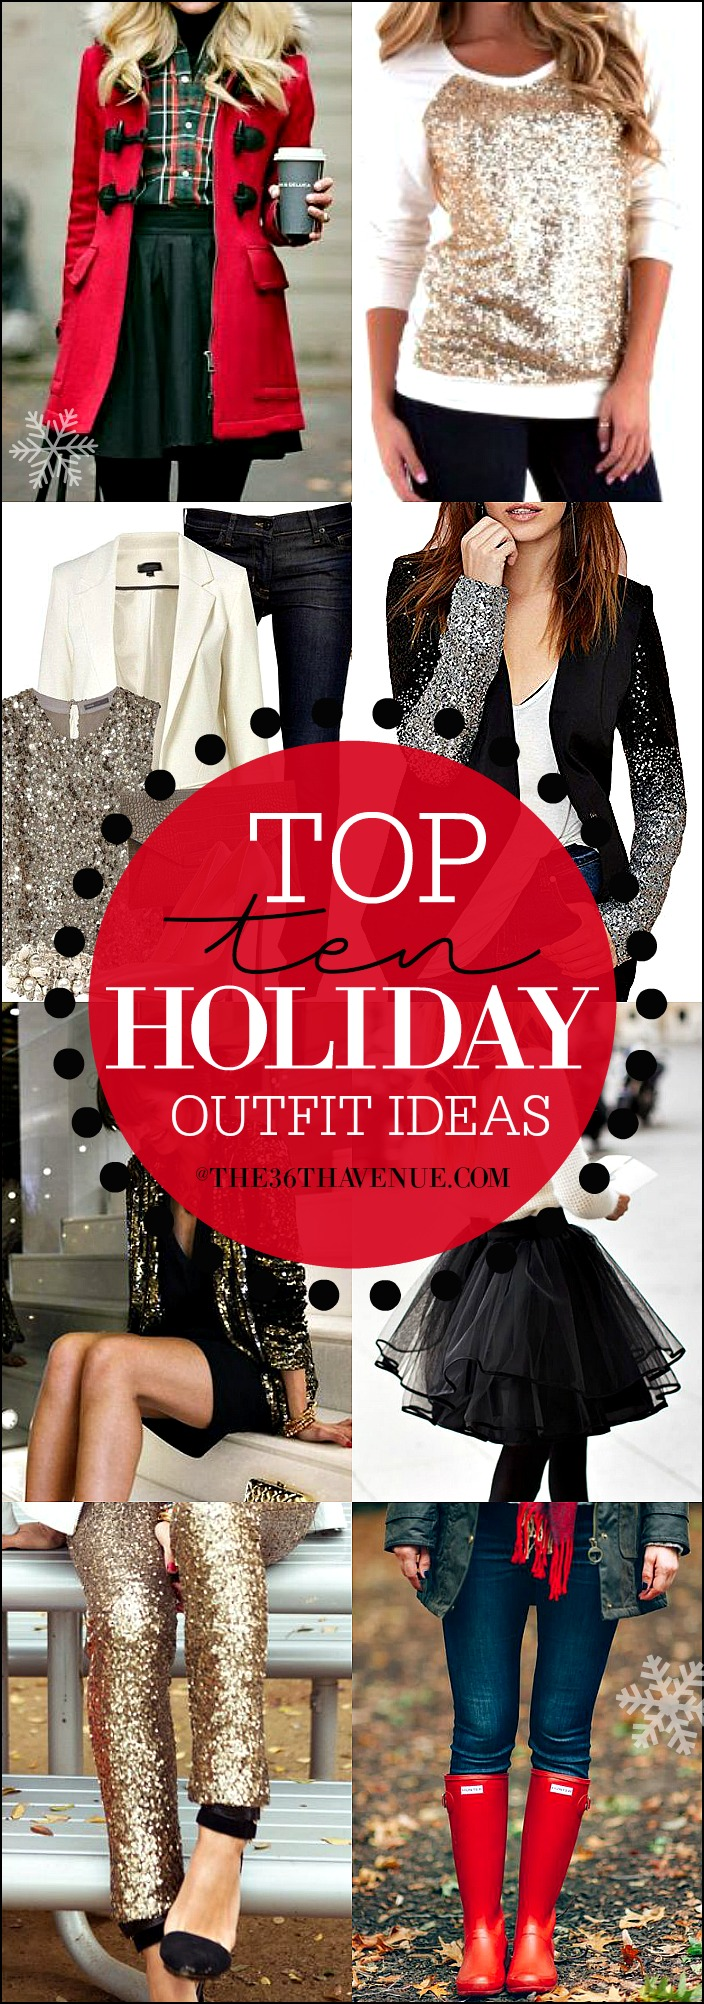 Holiday Outfit Ideas at the36thavenue.com